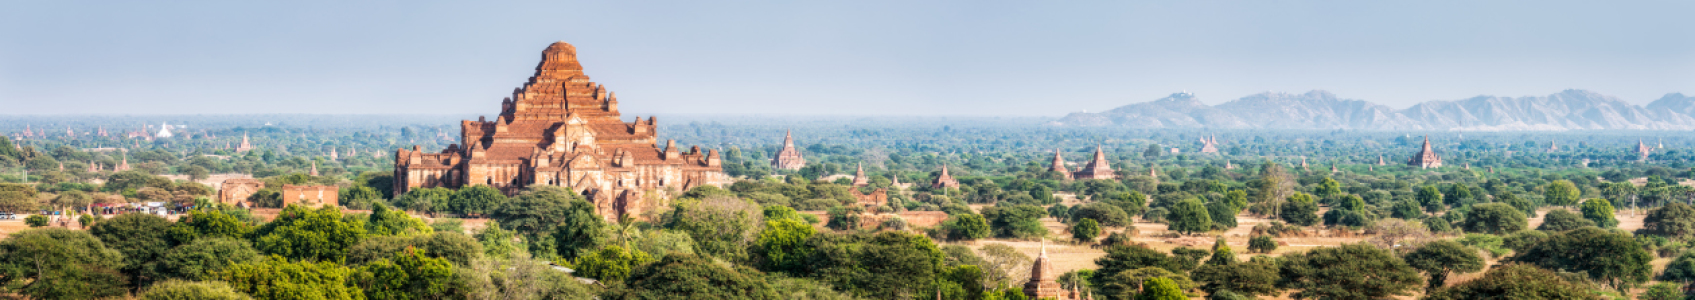 Picture no: 12353301 Bagan Panorama Created by: eyetronic